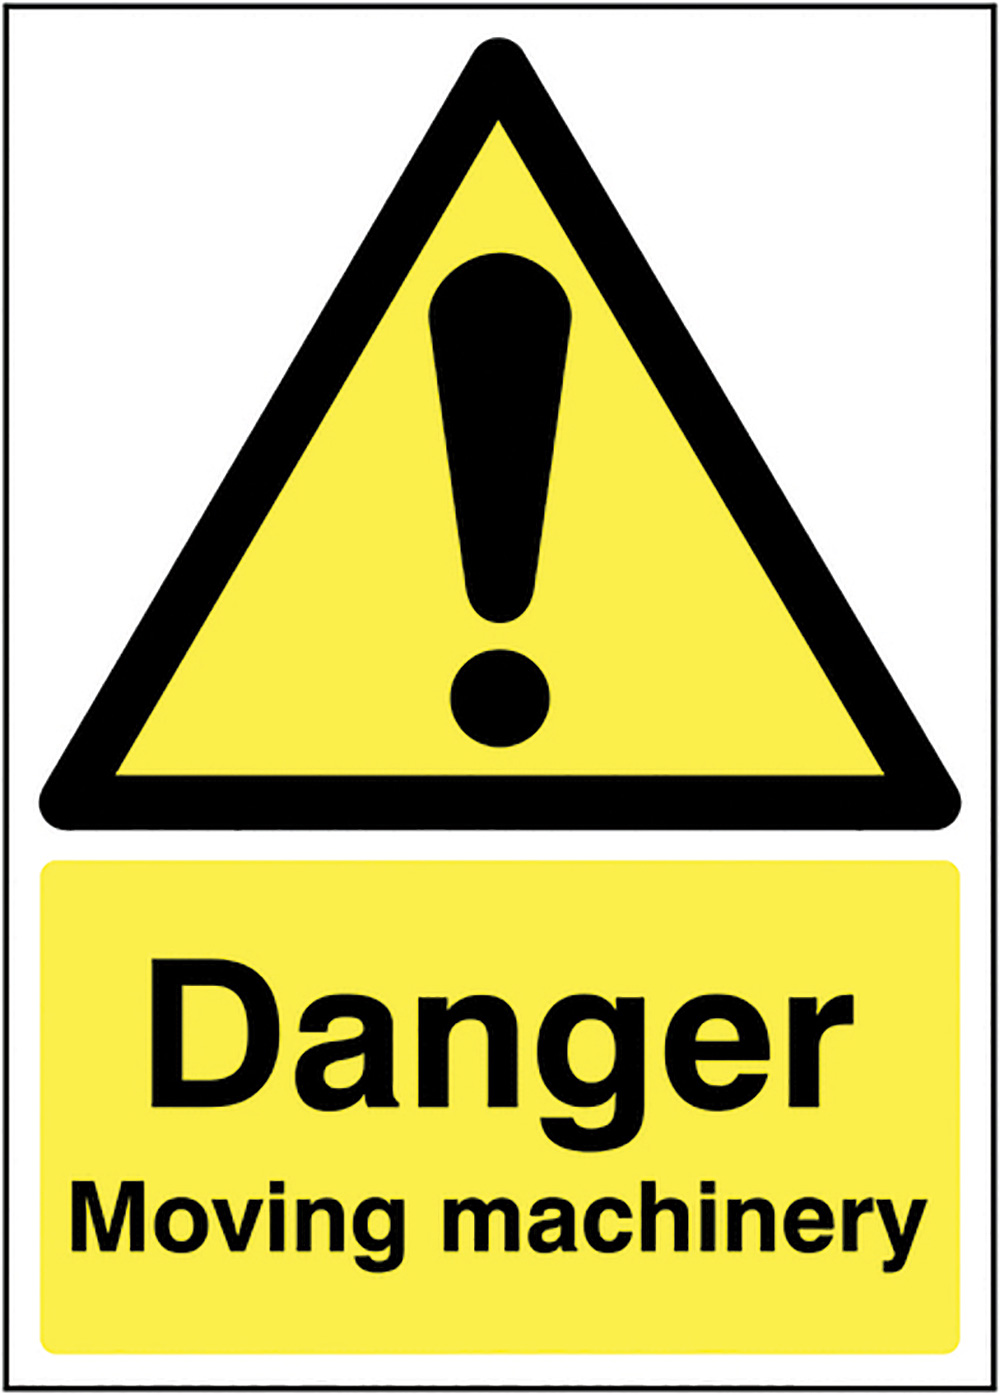 Danger Moving machinery 210x148mm 1.2mm Rigid Plastic Safety Sign